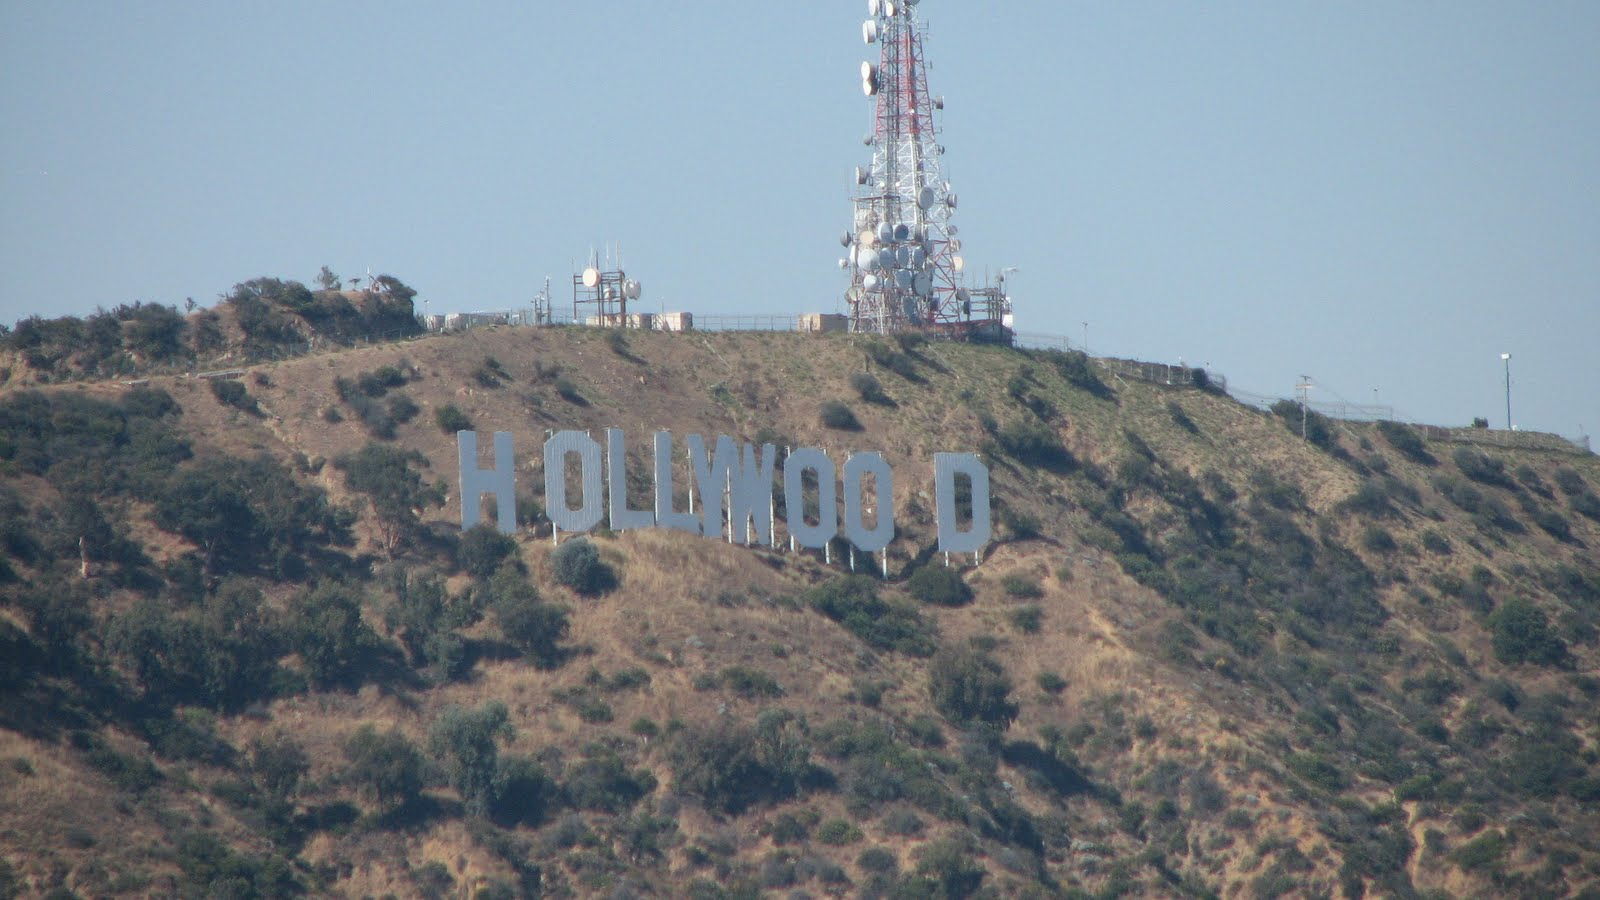 This Is Not The Original Hollywood Sign It Was Replaced 3 Years Ago Now Larger Than Before And Lights Up At Night